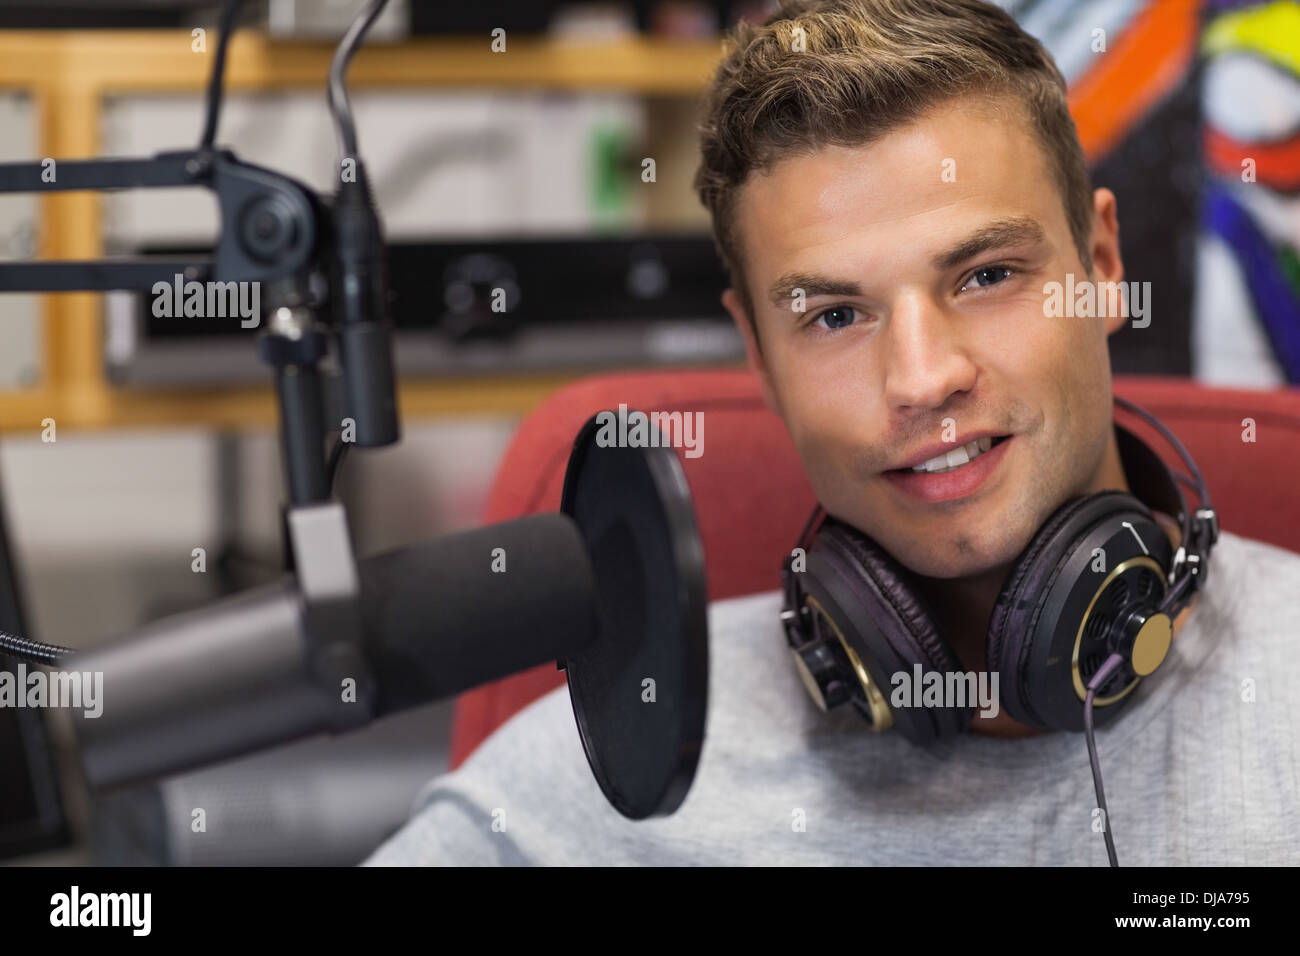 Handsome smiling singer recording a song - Stock Image